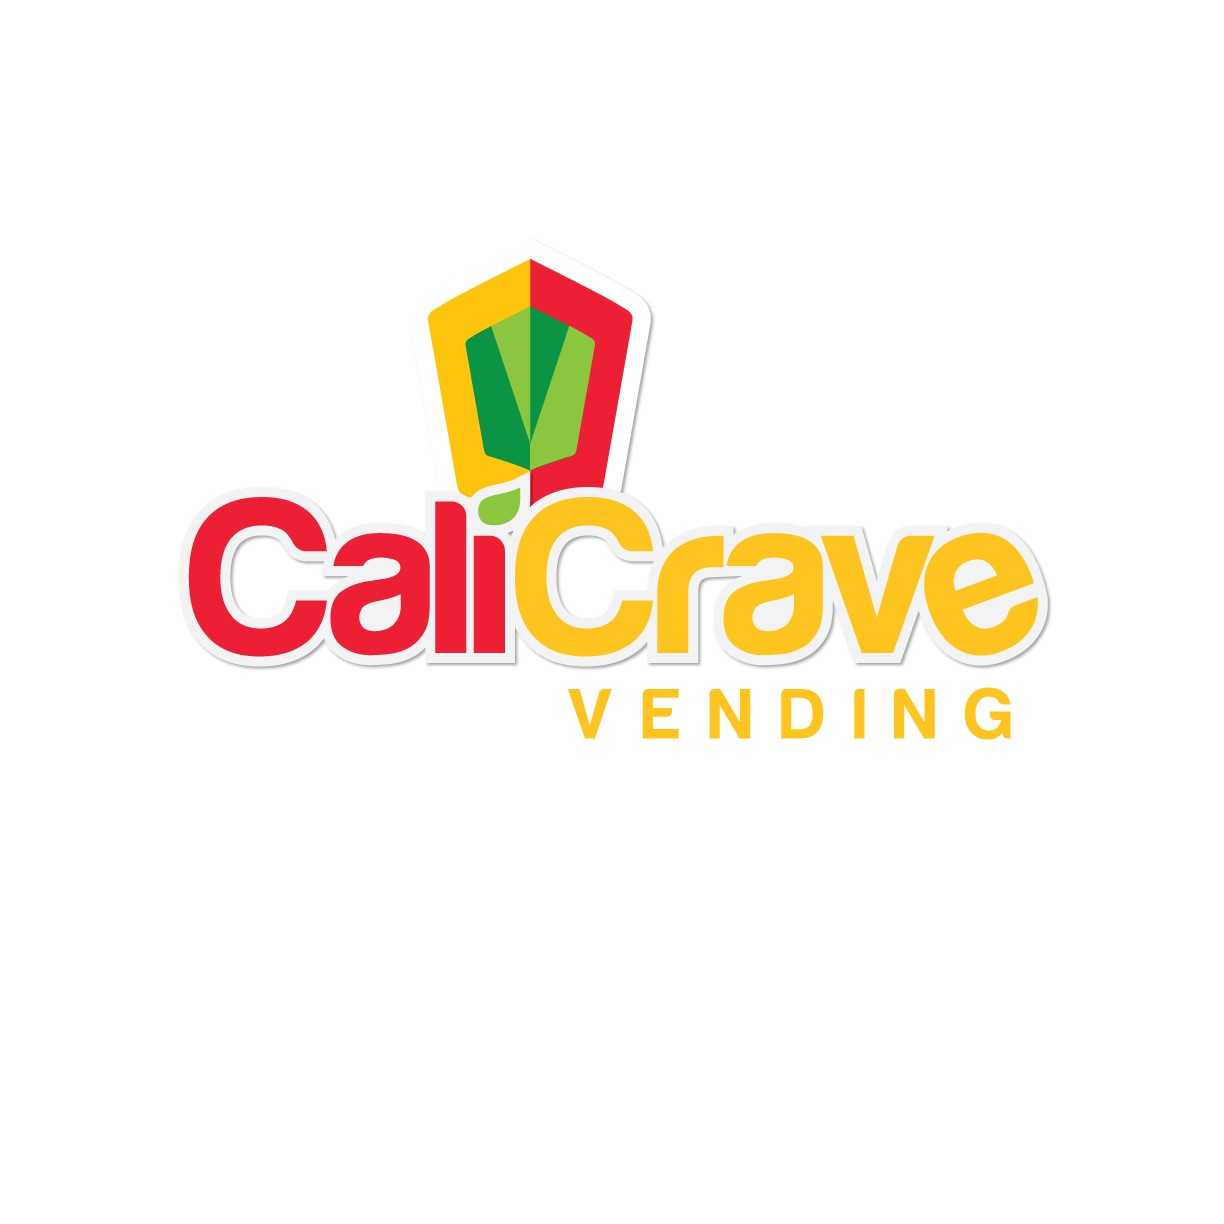 Cali Crave Vending need Logo for healthy vending machine business that catches eye